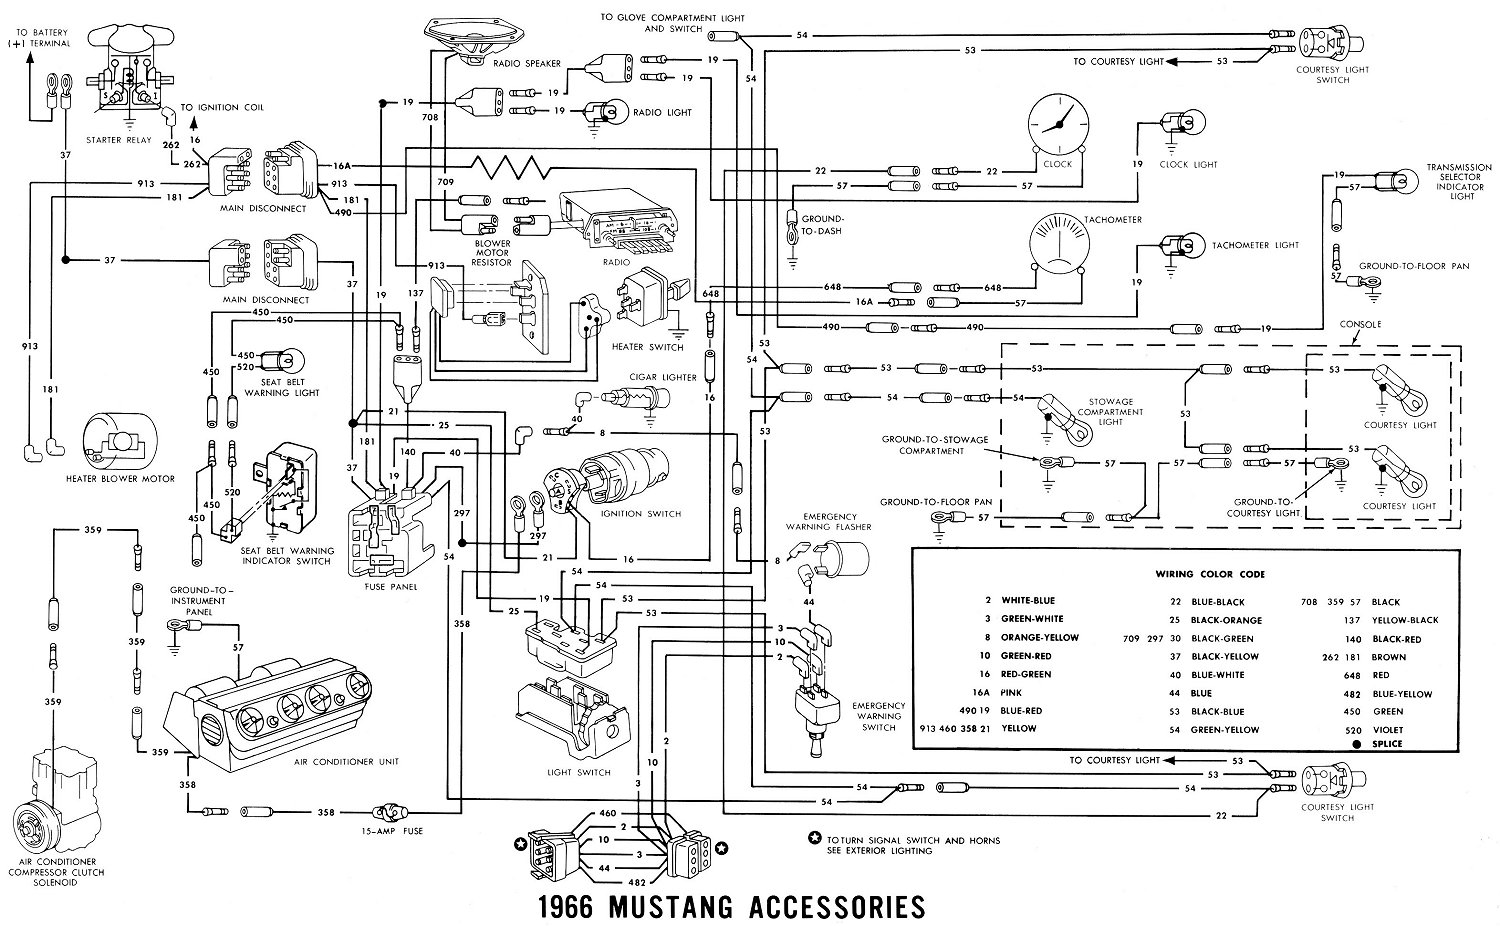 66acces1 1966 mustang wiring diagrams average joe restoration 1966 mustang fog light wiring diagram at bakdesigns.co